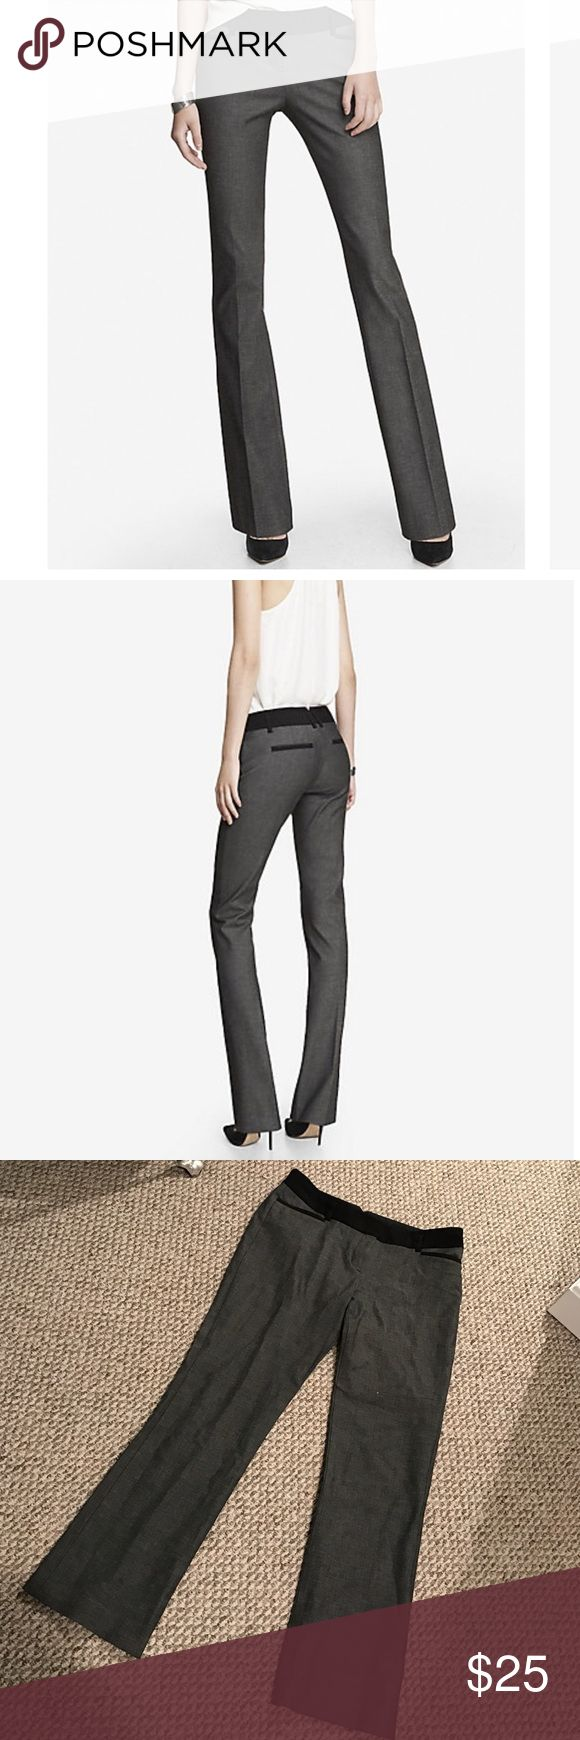 Gray and Black Columnist Barely Boot Cut Pants Only worn once! Beautiful Columnist Barely Boot cut pants. Perfect for work with a blouse or blazer! Gray pants with black detailing. Very flattering pants! Express Pants Boot Cut & Flare